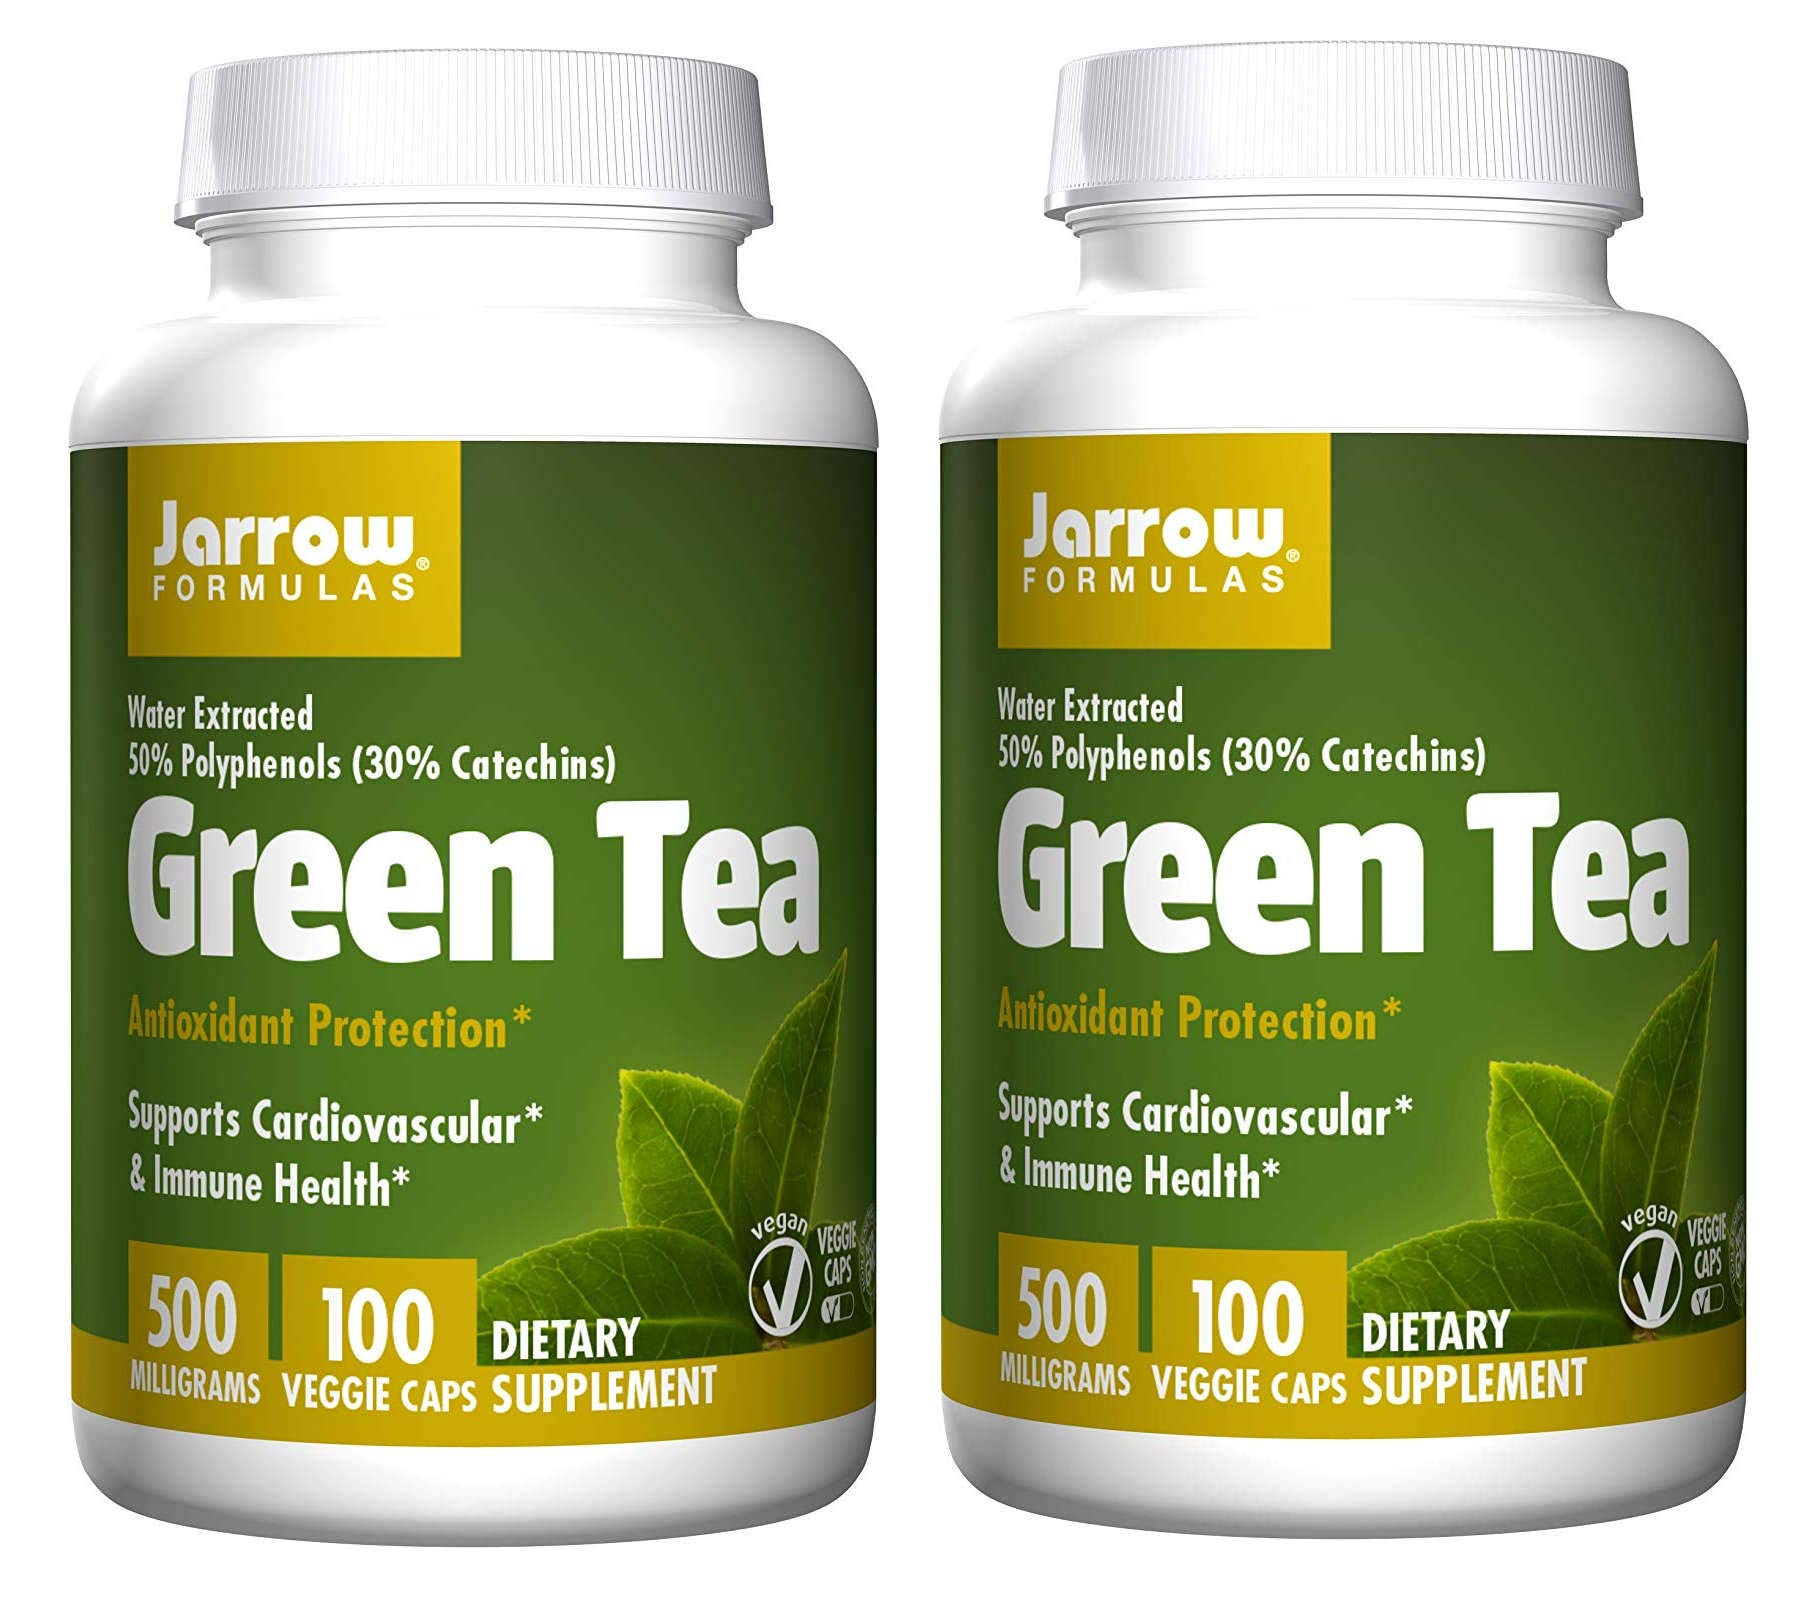 Jarrow Formulas Green Tea Antioxidant Protection Water Extracted 50% Polyphenols (30% Catechins) for Cardiovascular and Immune Health 500 Milligrams Per Serving (100 Veggie Caps) Pack of 2 by JARR0W